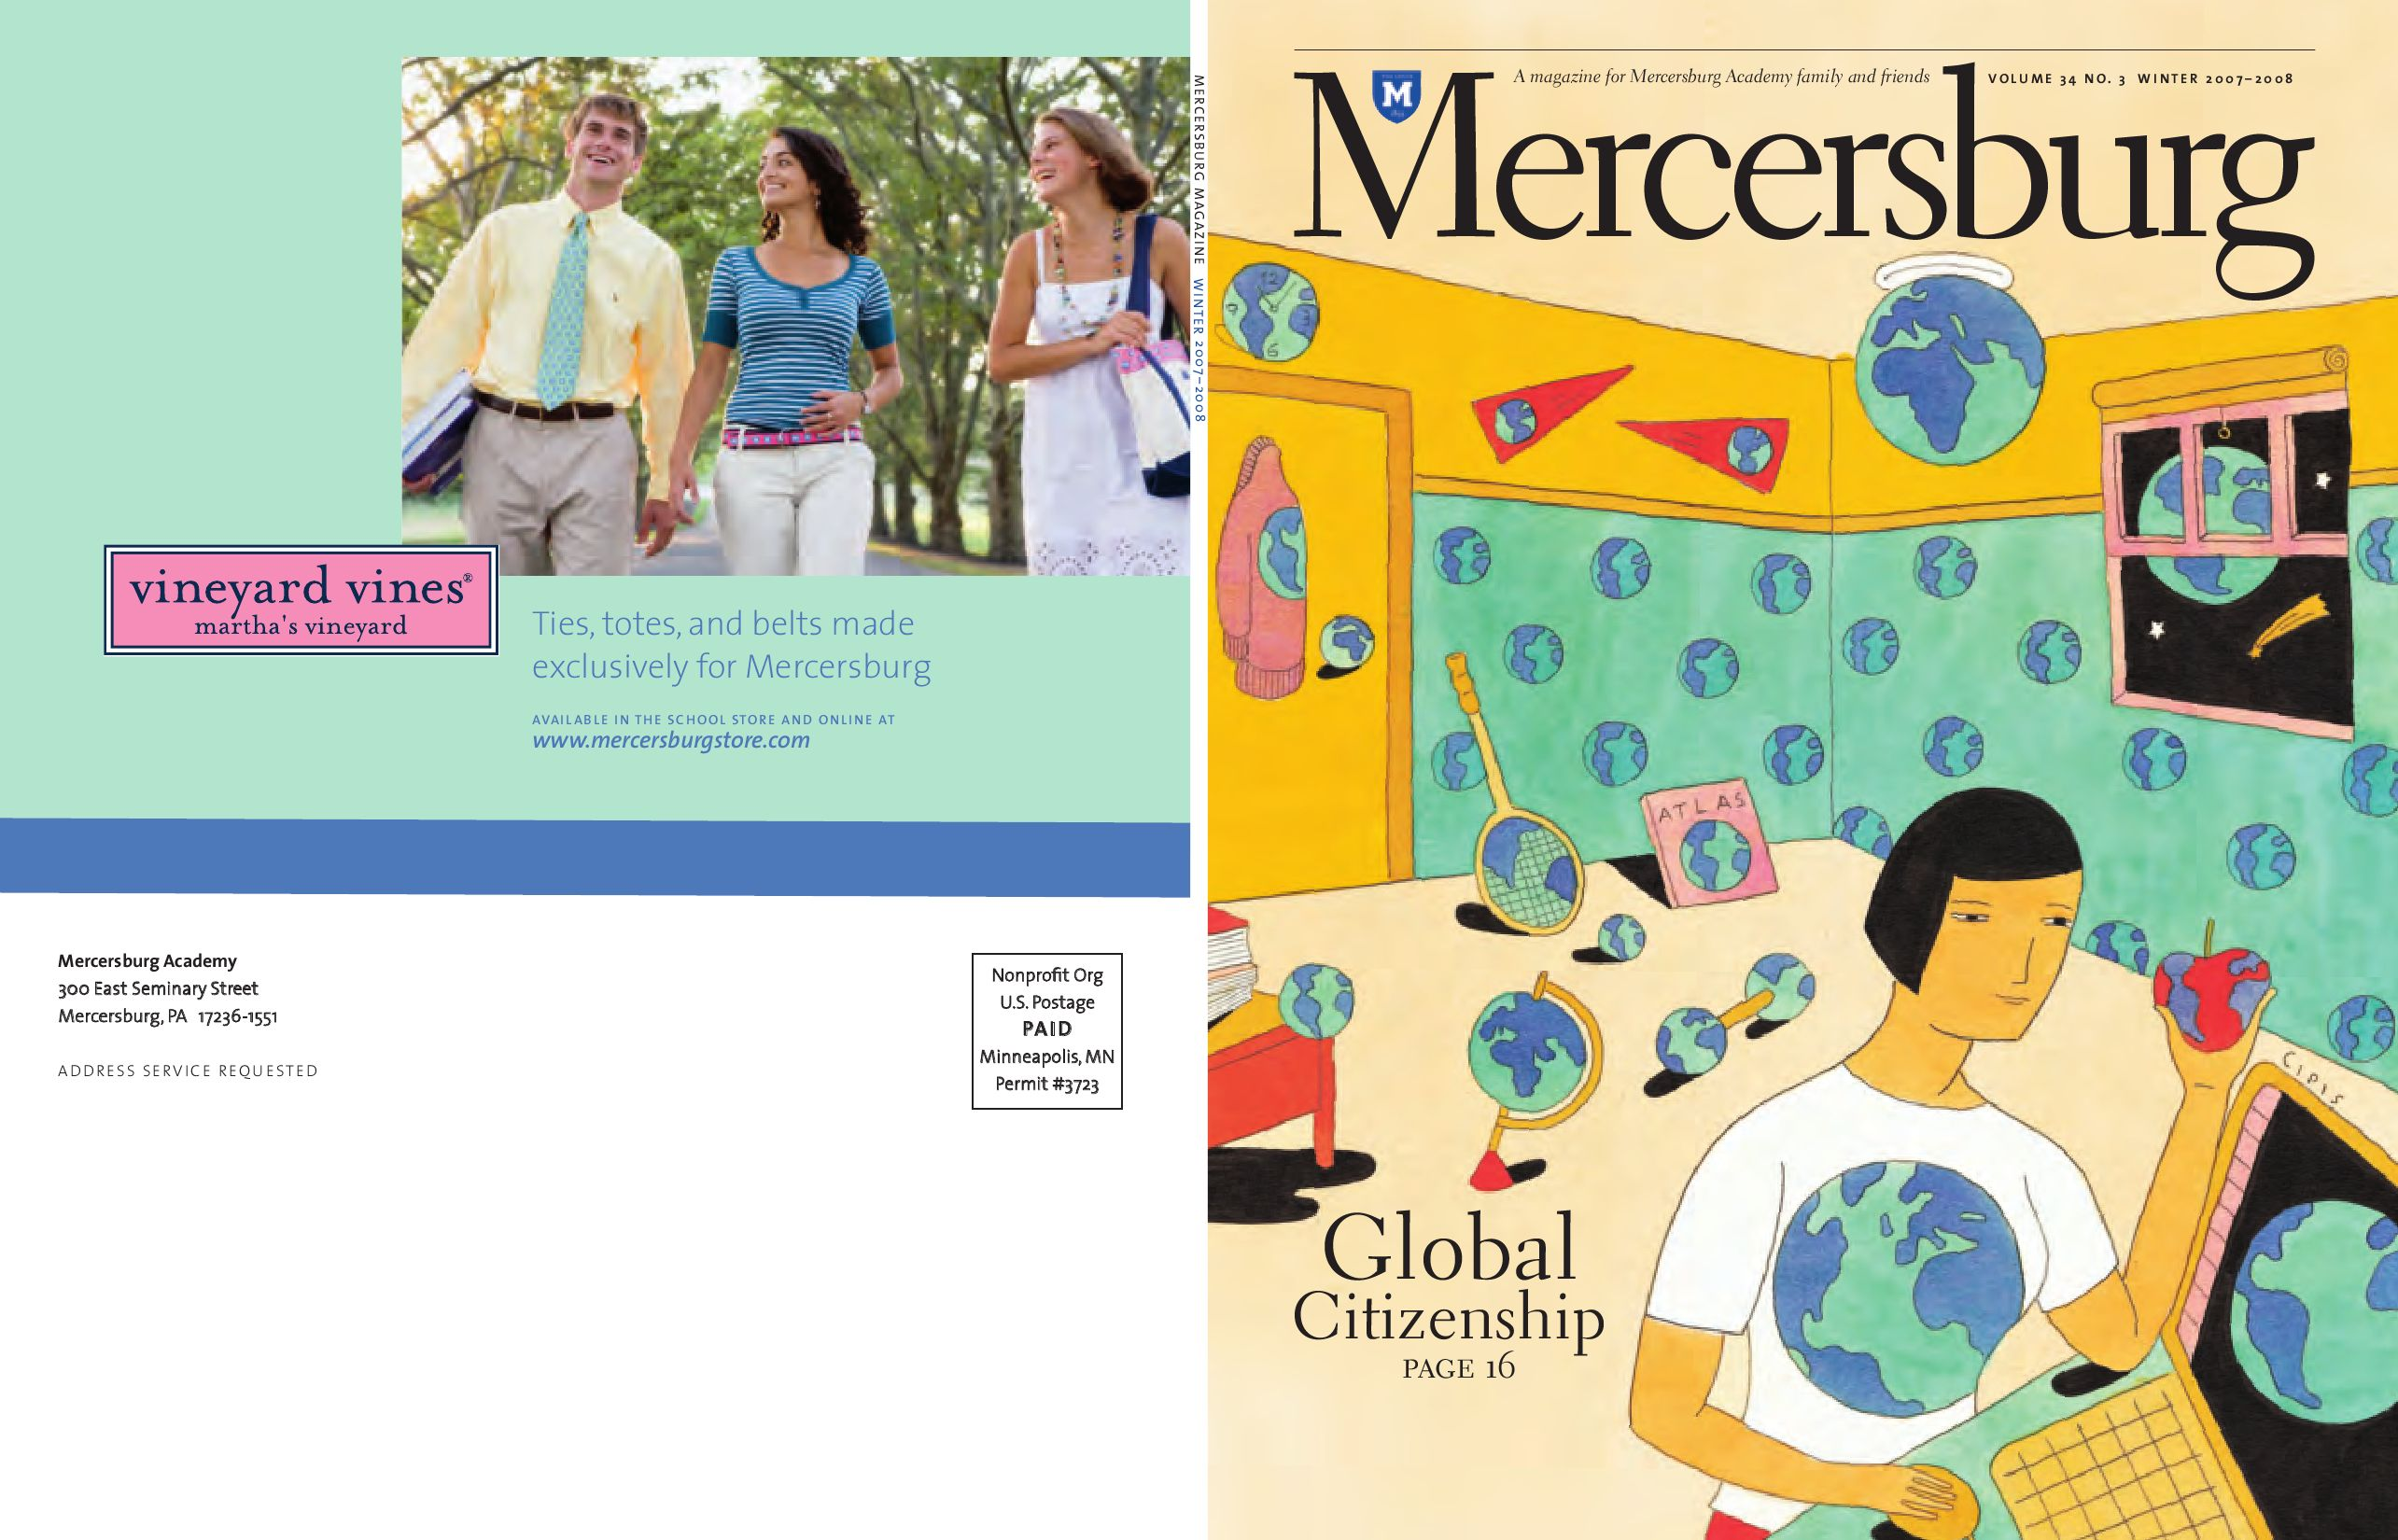 Mercersburg Magazine Fall 2016 By Academy Issuu Parallel Circuits For Kids Thescienceclassroom Electric X3cb Winter 2007 2008